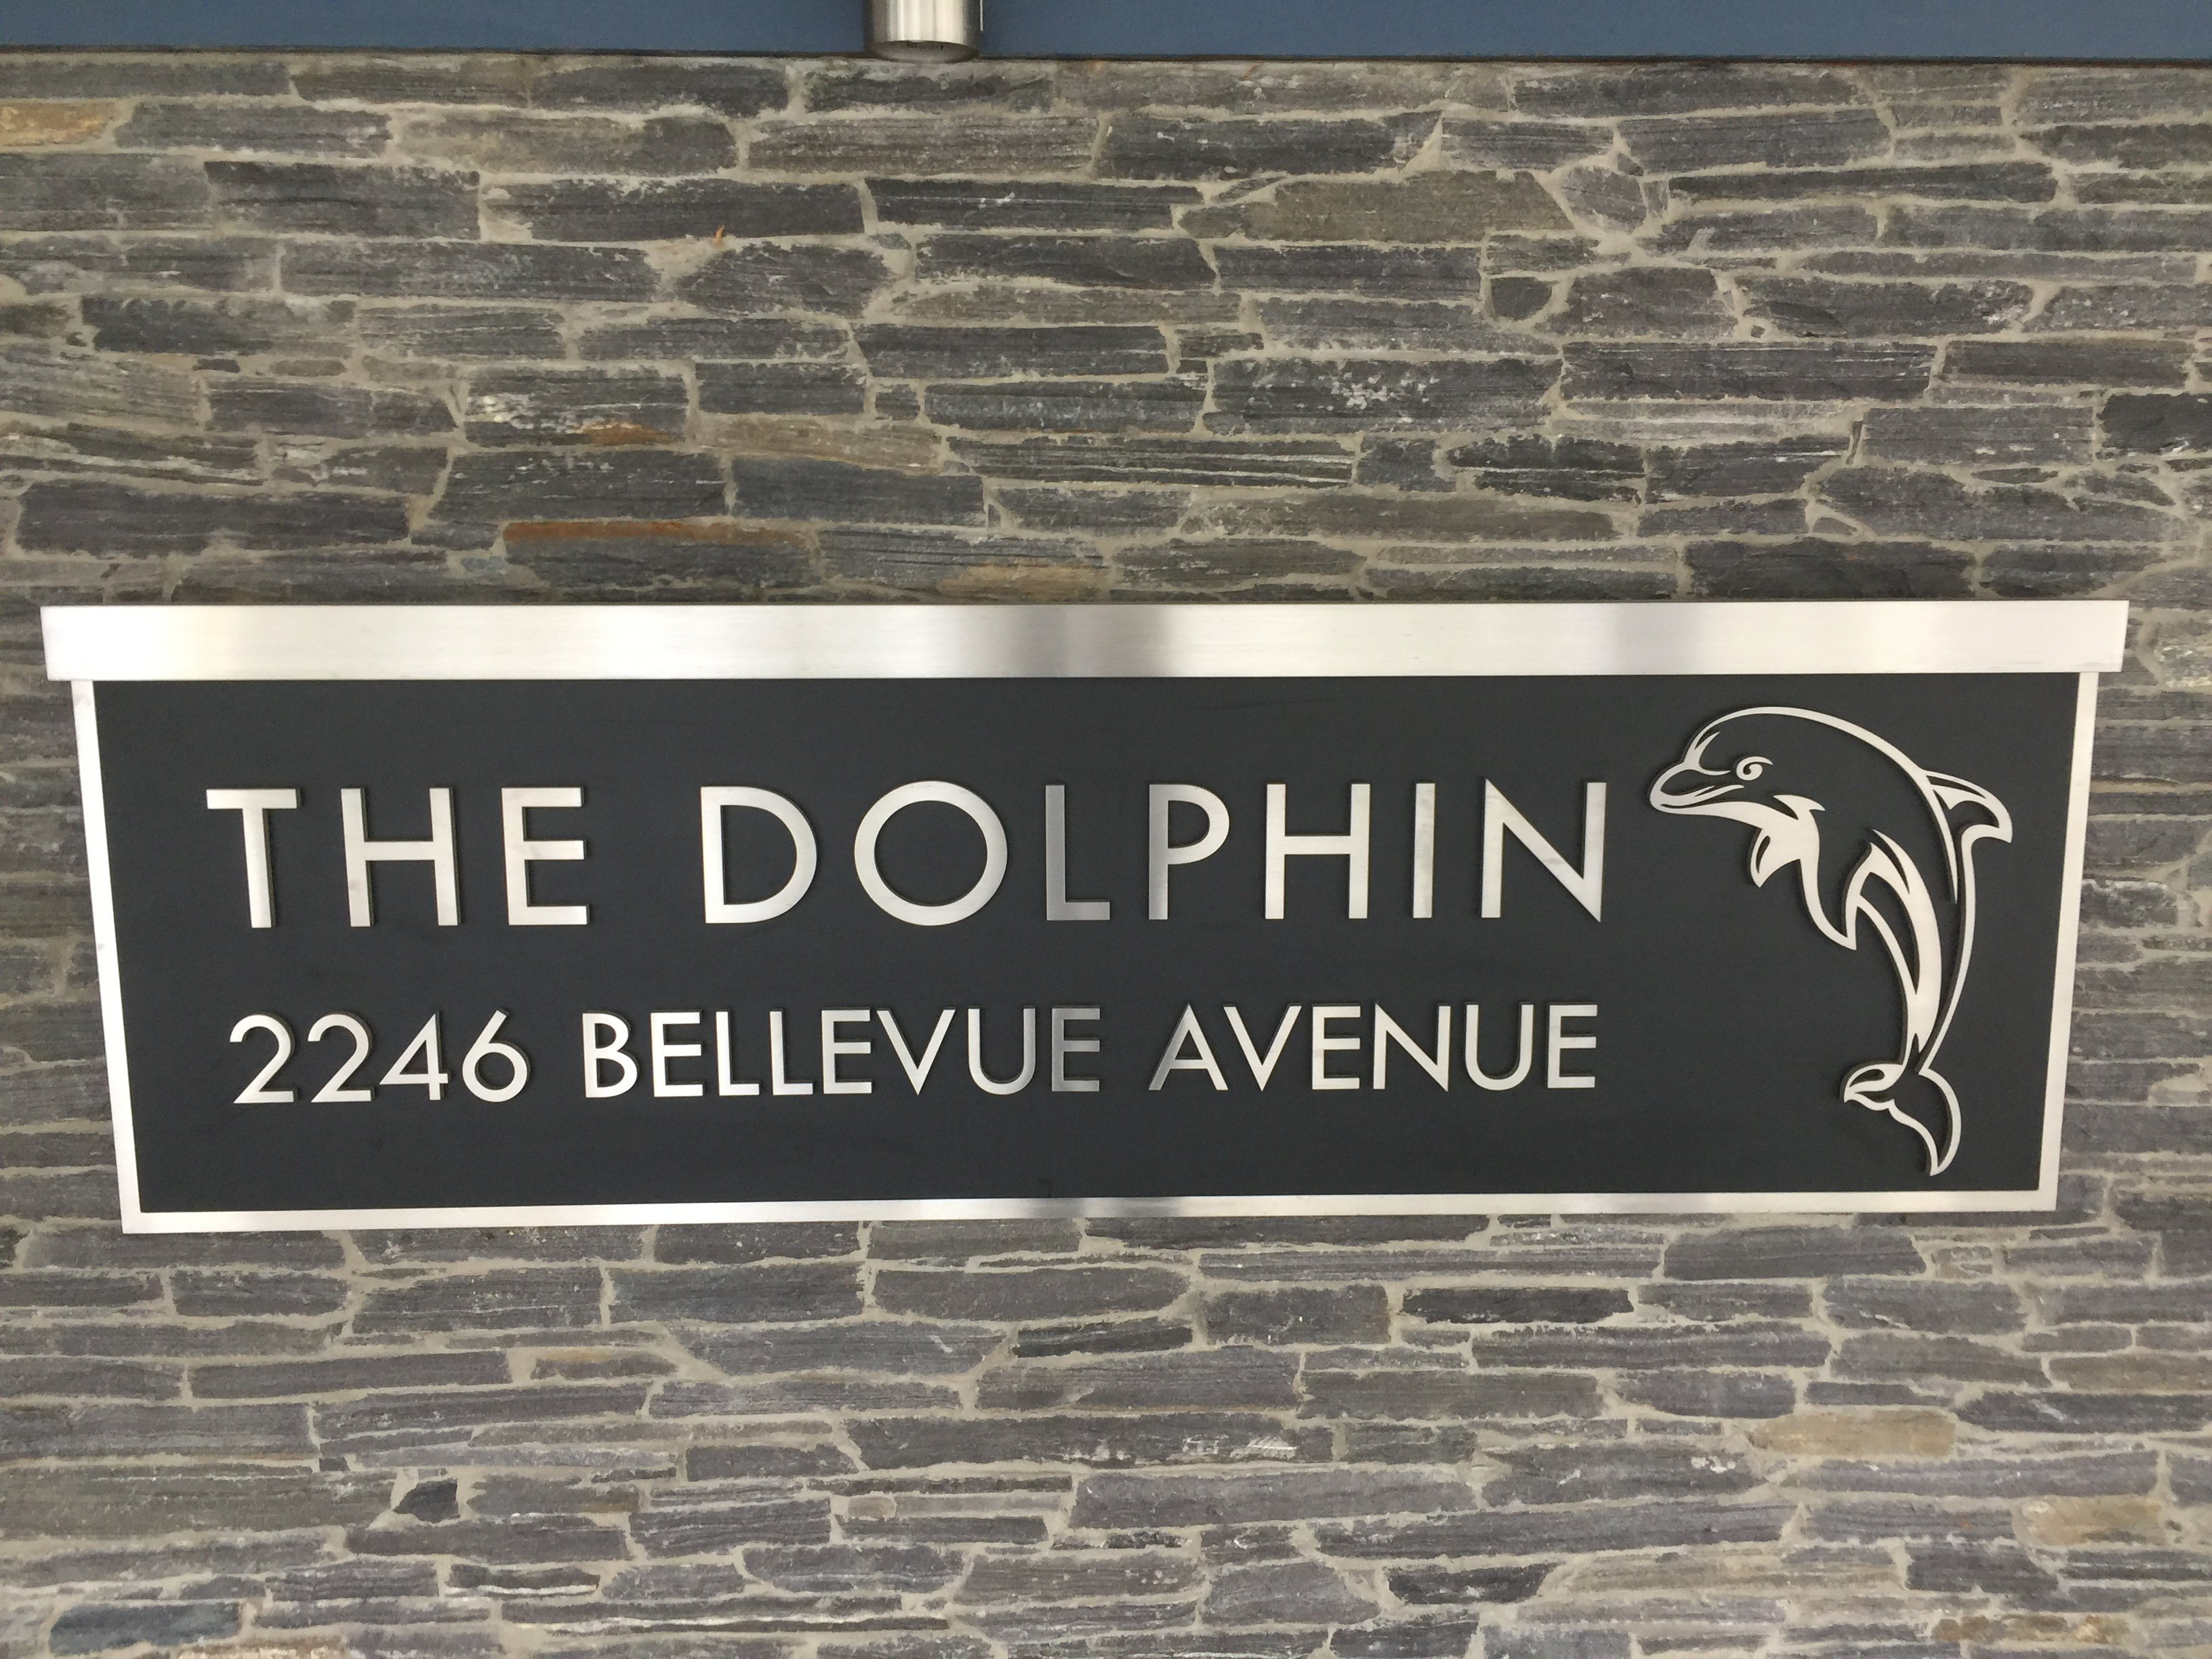 The Dolphin!